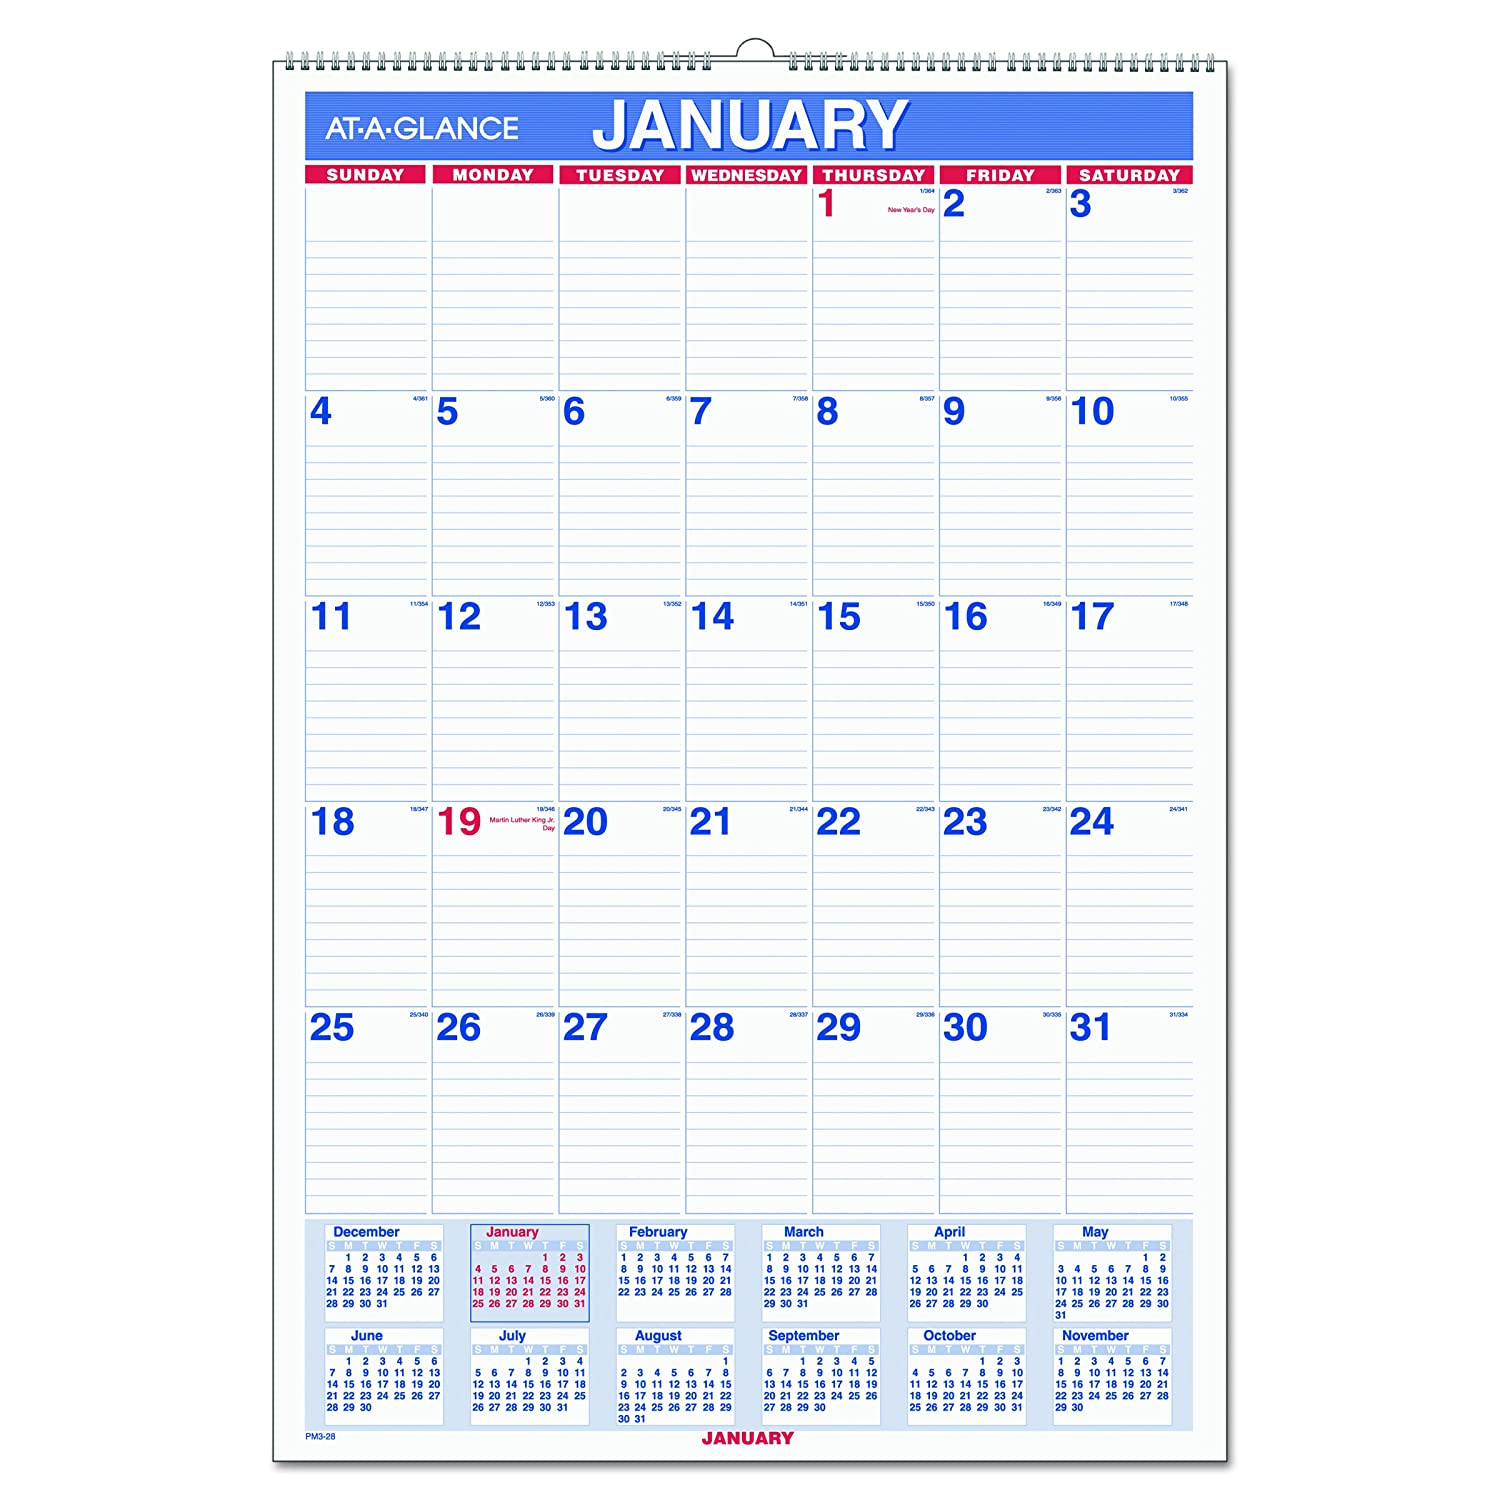 Amazon.com : AT-A-GLANCE Wall Calendar 2017, Monthly, 15-1/2 x 22 ...